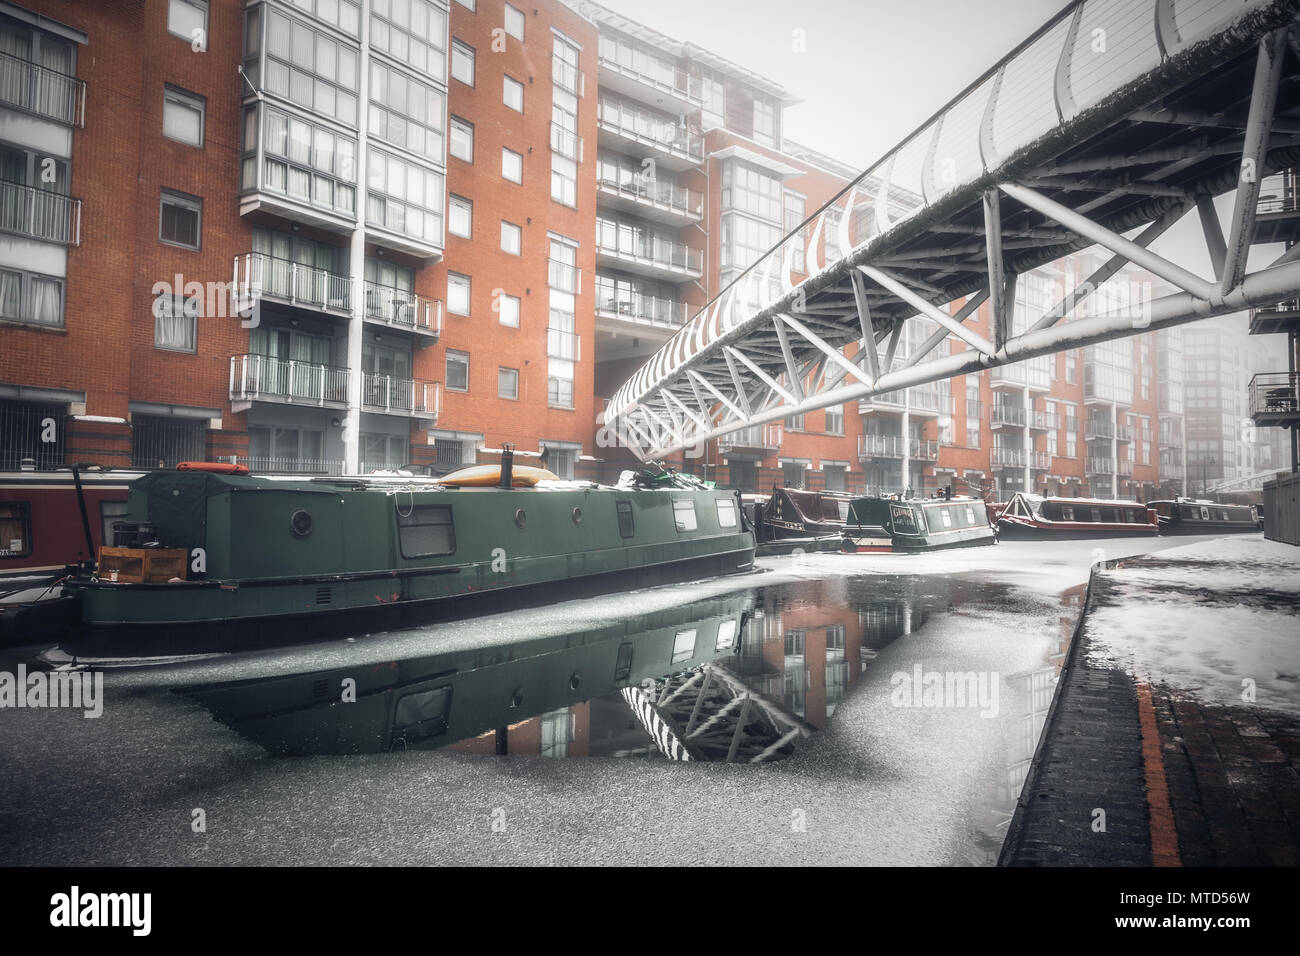 Sherborne Wharf in Birmingham, UK covered in winter snow and ice - Stock Image